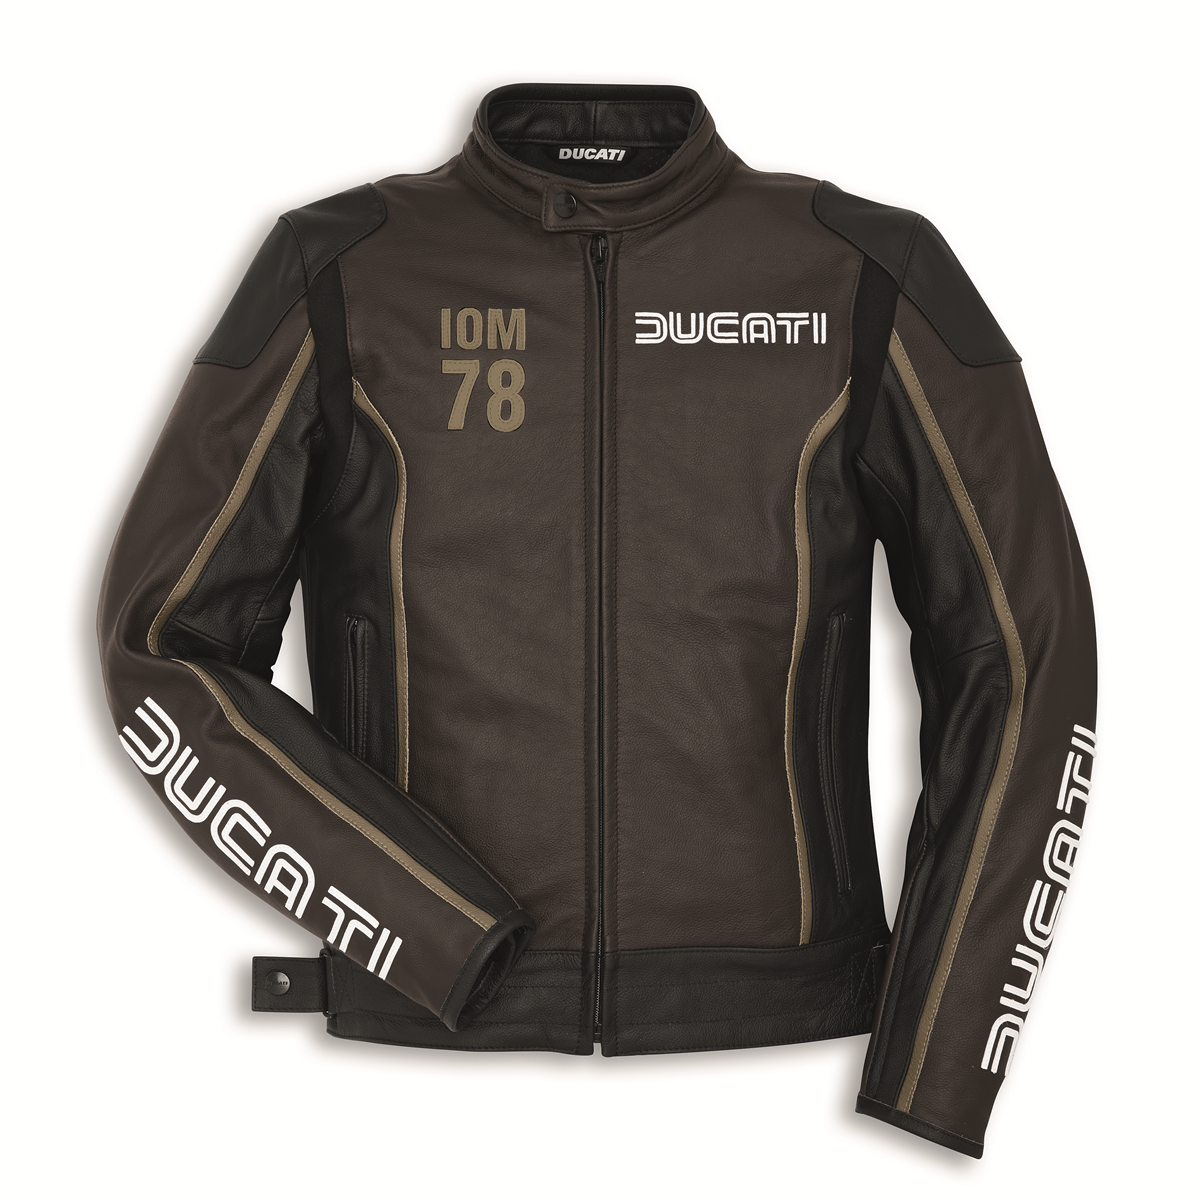 blouson ducati iom78 c1 cuir s team motos. Black Bedroom Furniture Sets. Home Design Ideas